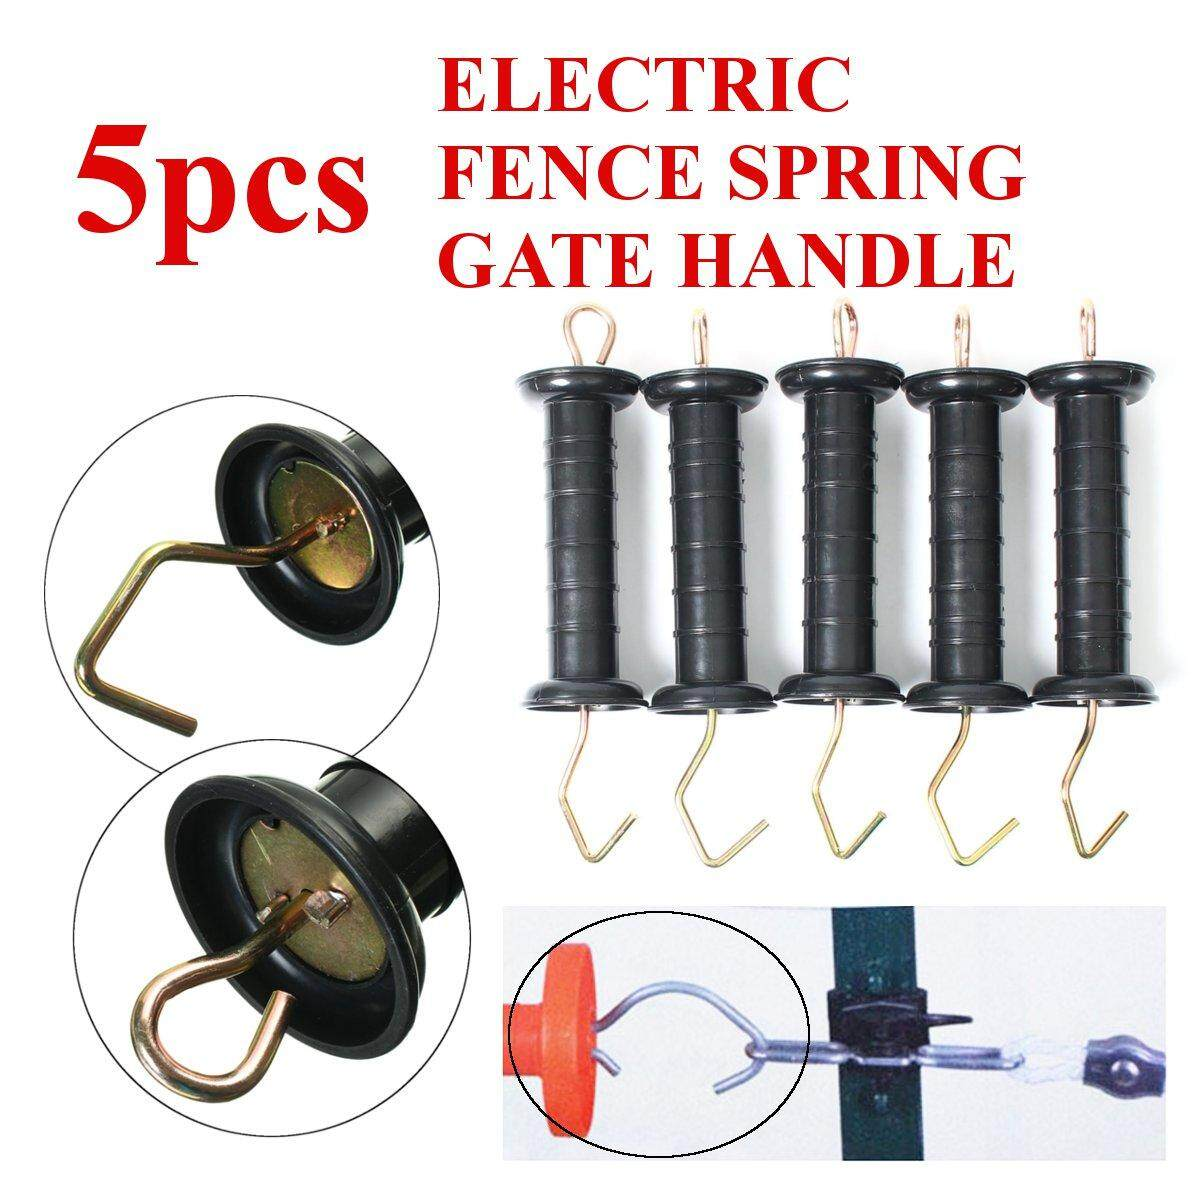 5pcs Dare Heavy Duty Large Shield Spring Gate Handle For Electric Fence Fencing By Glimmer.